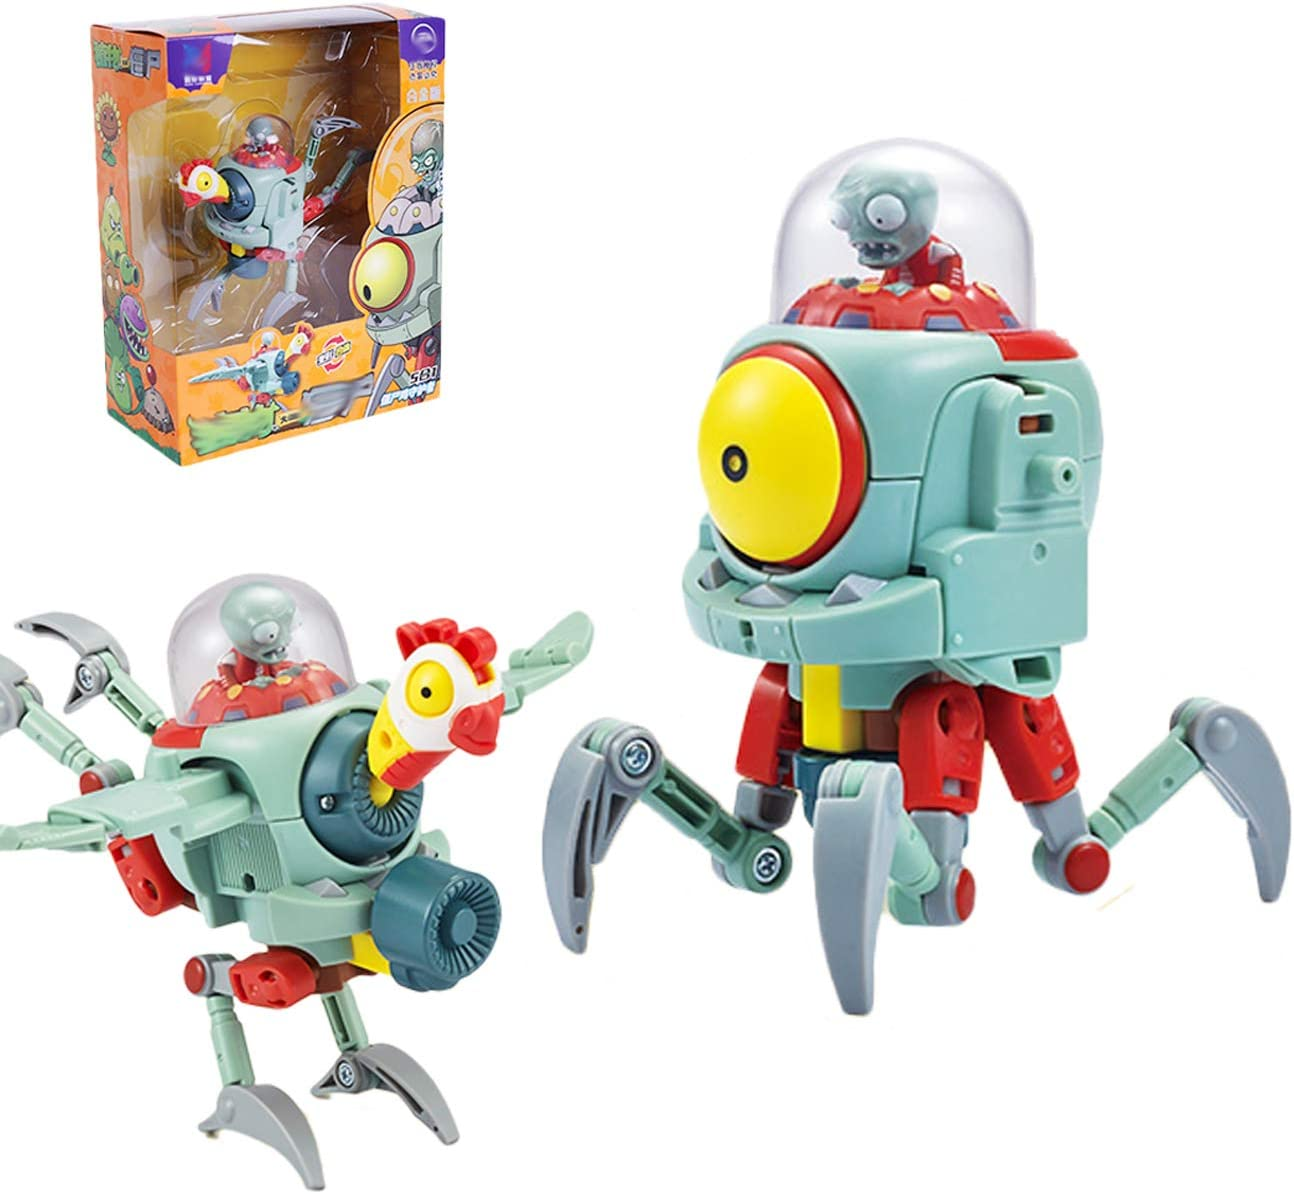 Plants vs. Zombies 2 Figures Series PVC Toys Action Playset deskgame for Boys 6,7,8,9,10,11 Age,Great Gifts for Kids and Fans,Birthday and Christmas Party (Zombie Chicken)